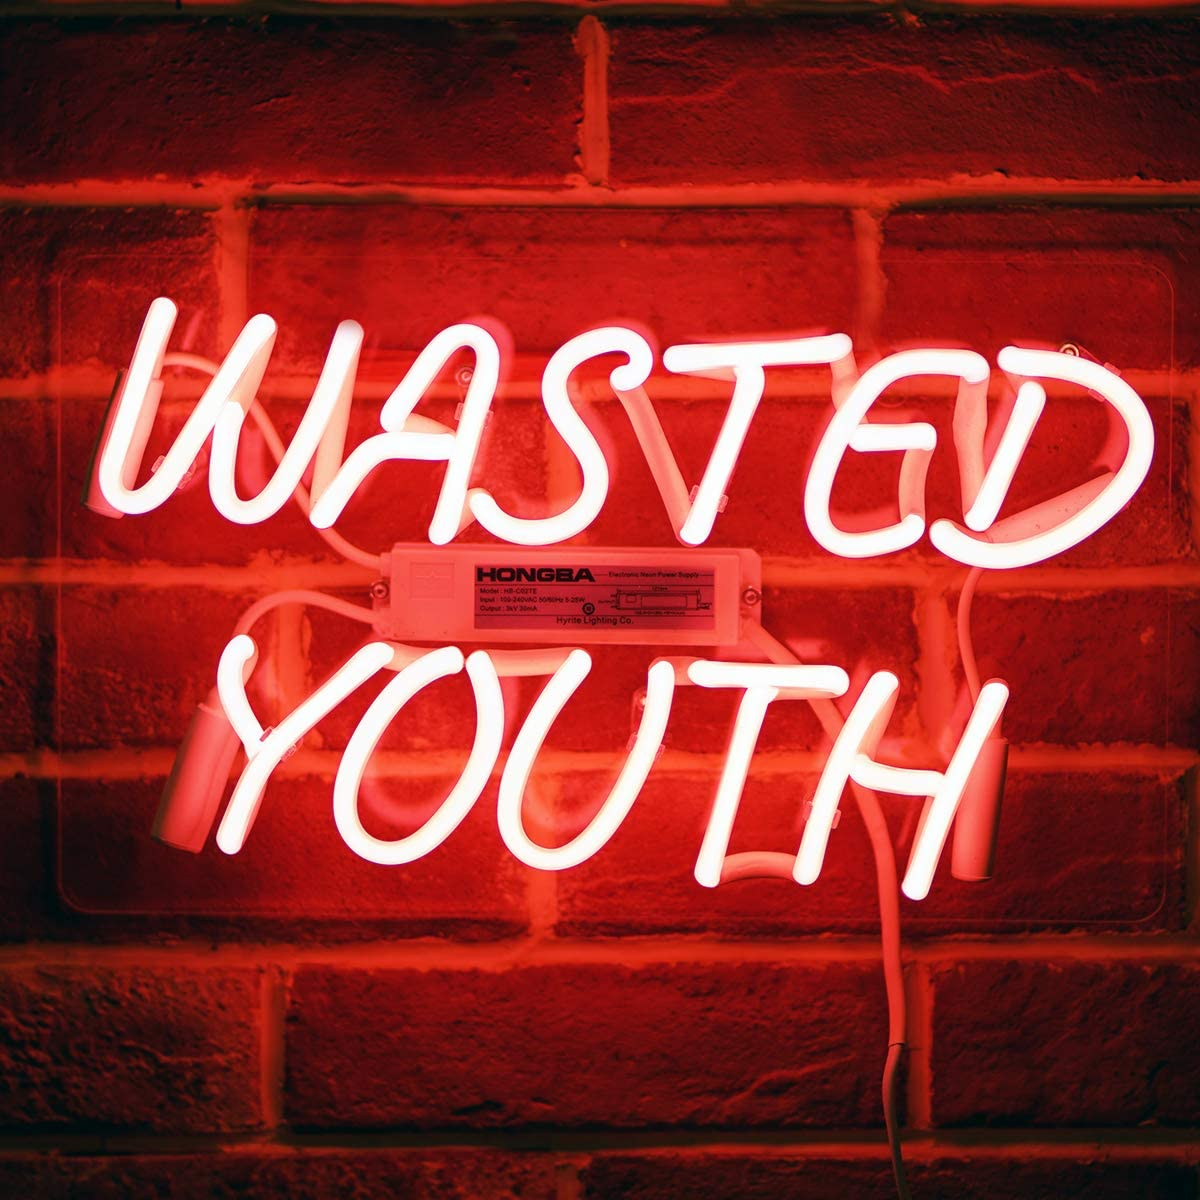 "Neon Signs Wasted Youth Beer Bar Bedroom Neon Light Handmade Glass Neon Lights Sign for Bedroom Office Hotel Pub Cafe Recreation Room Wall Decor Night Light 15"" x 9"" Pink"